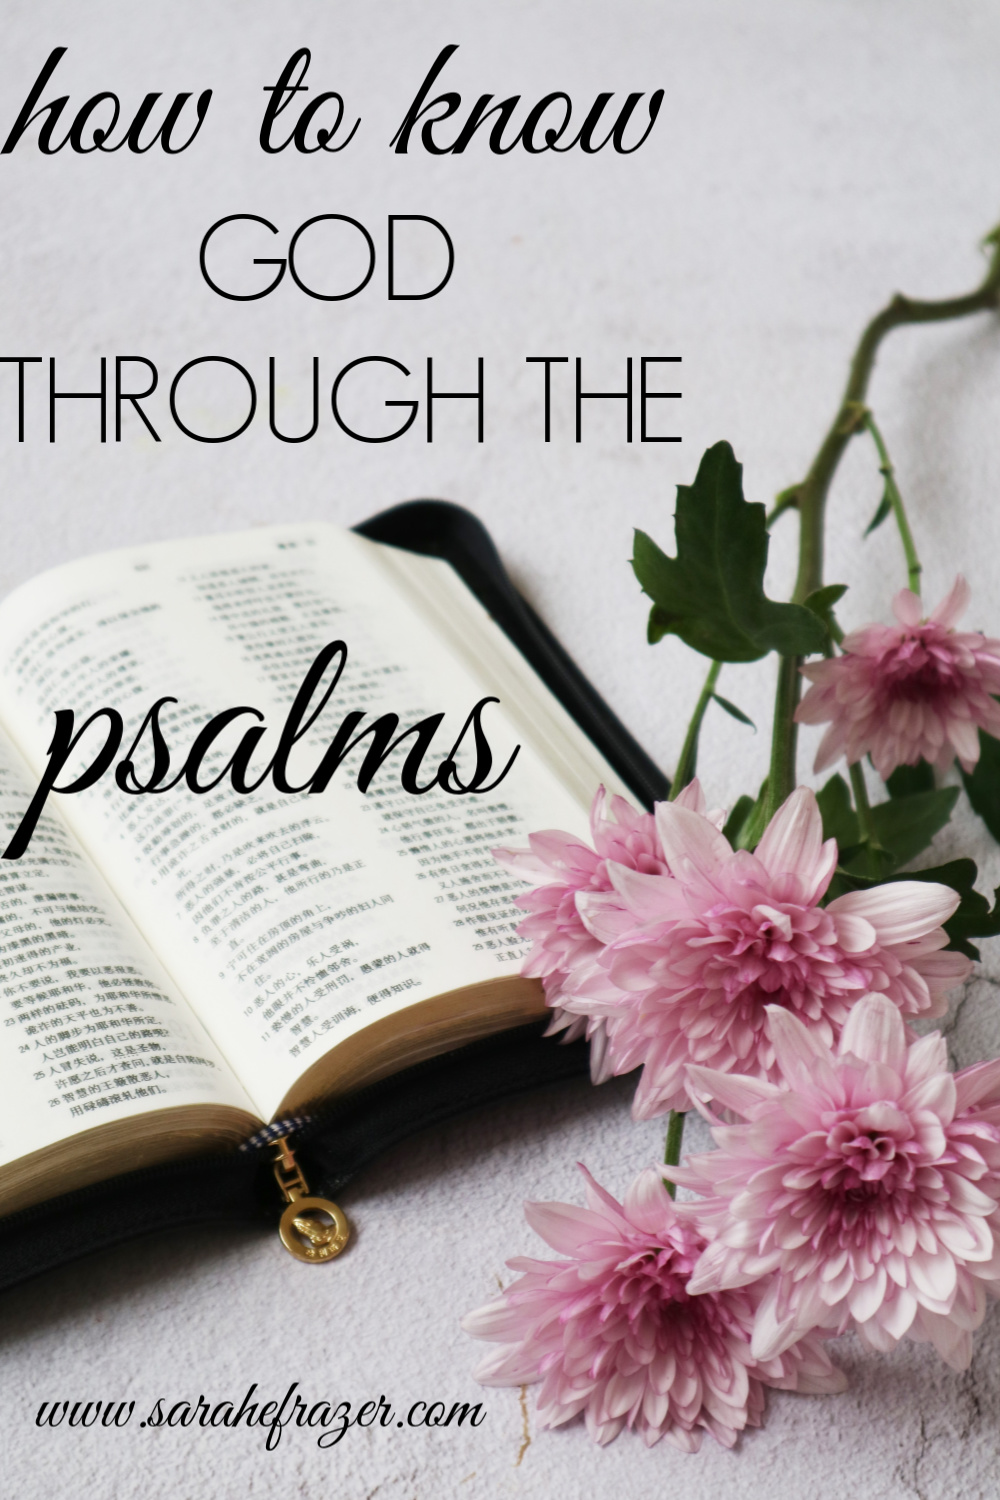 How to Know God Through the Psalms